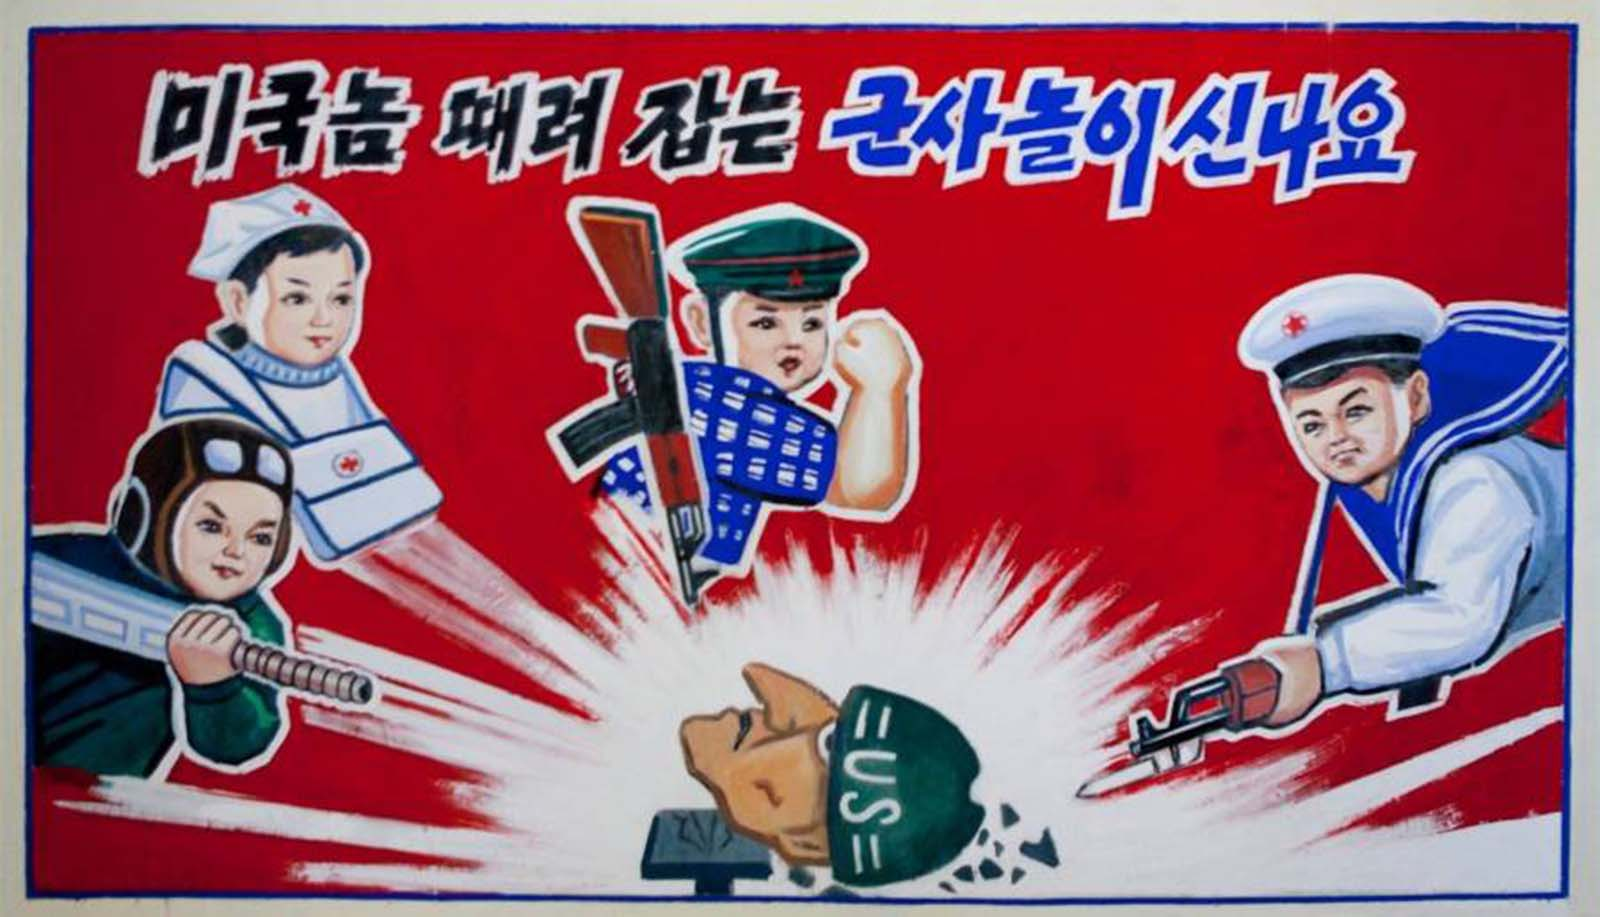 North Korean Anti-American propaganda for children.